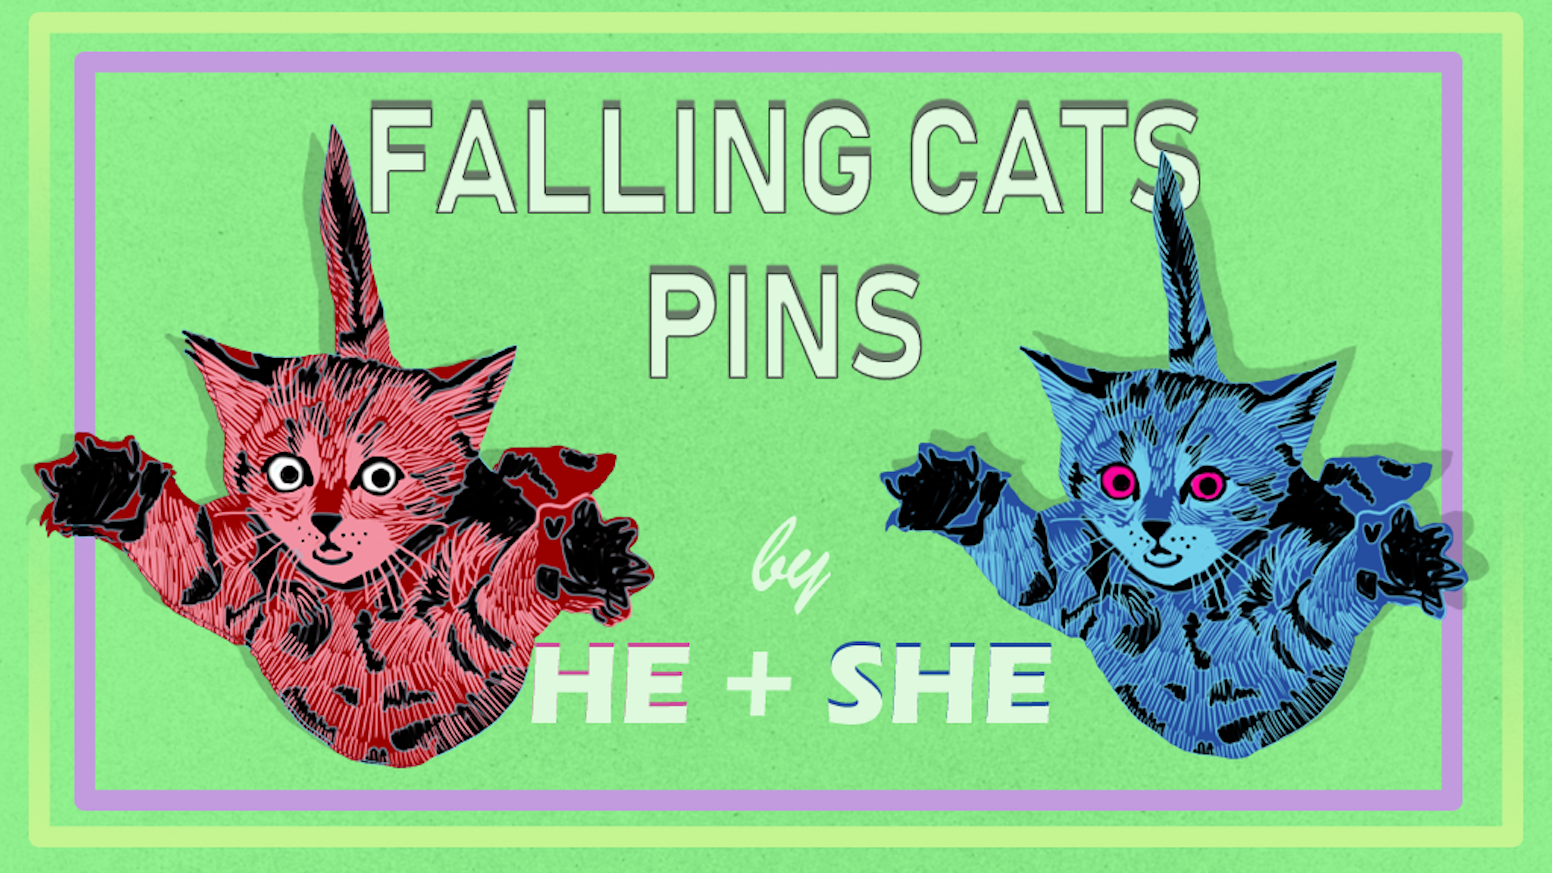 Why do you need these pins? Because you love cats! Save them by pinning them to your jacket so they don't fall. Red, blue or both!